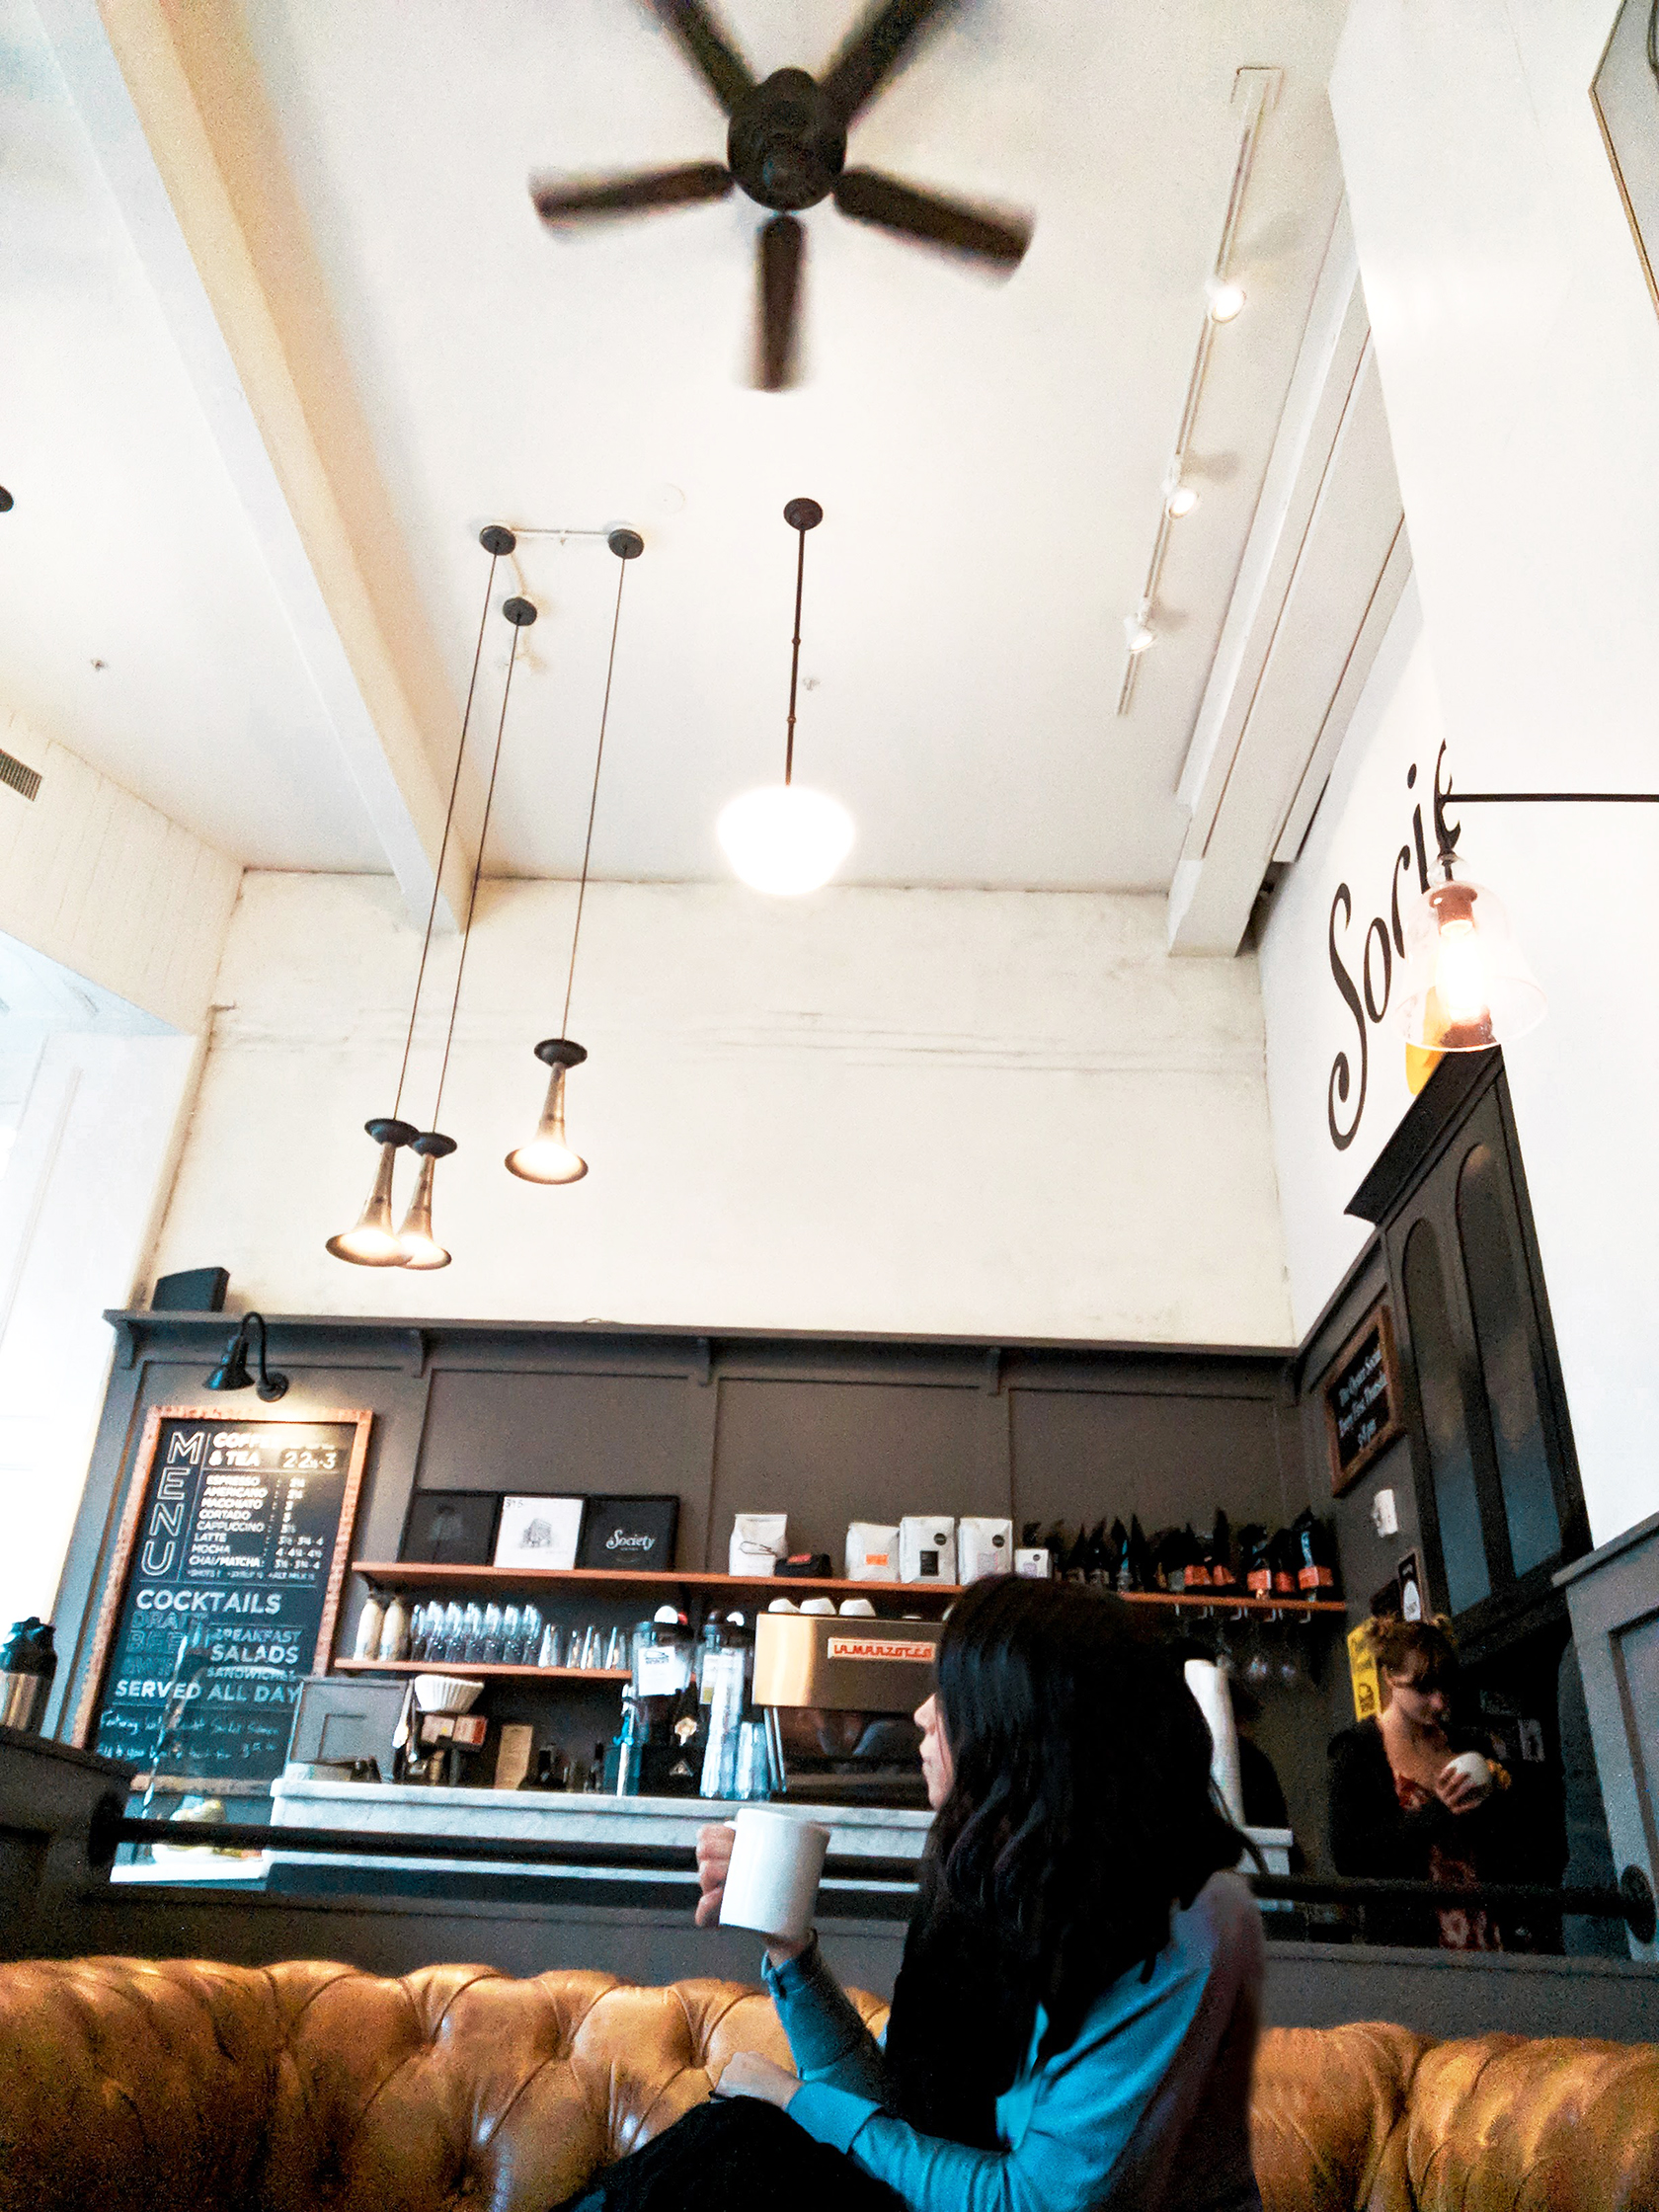 If you love cozy couches, warm, crackling fires, and amazing almond lattes, The Society Hotel cafe is the place you must go chill